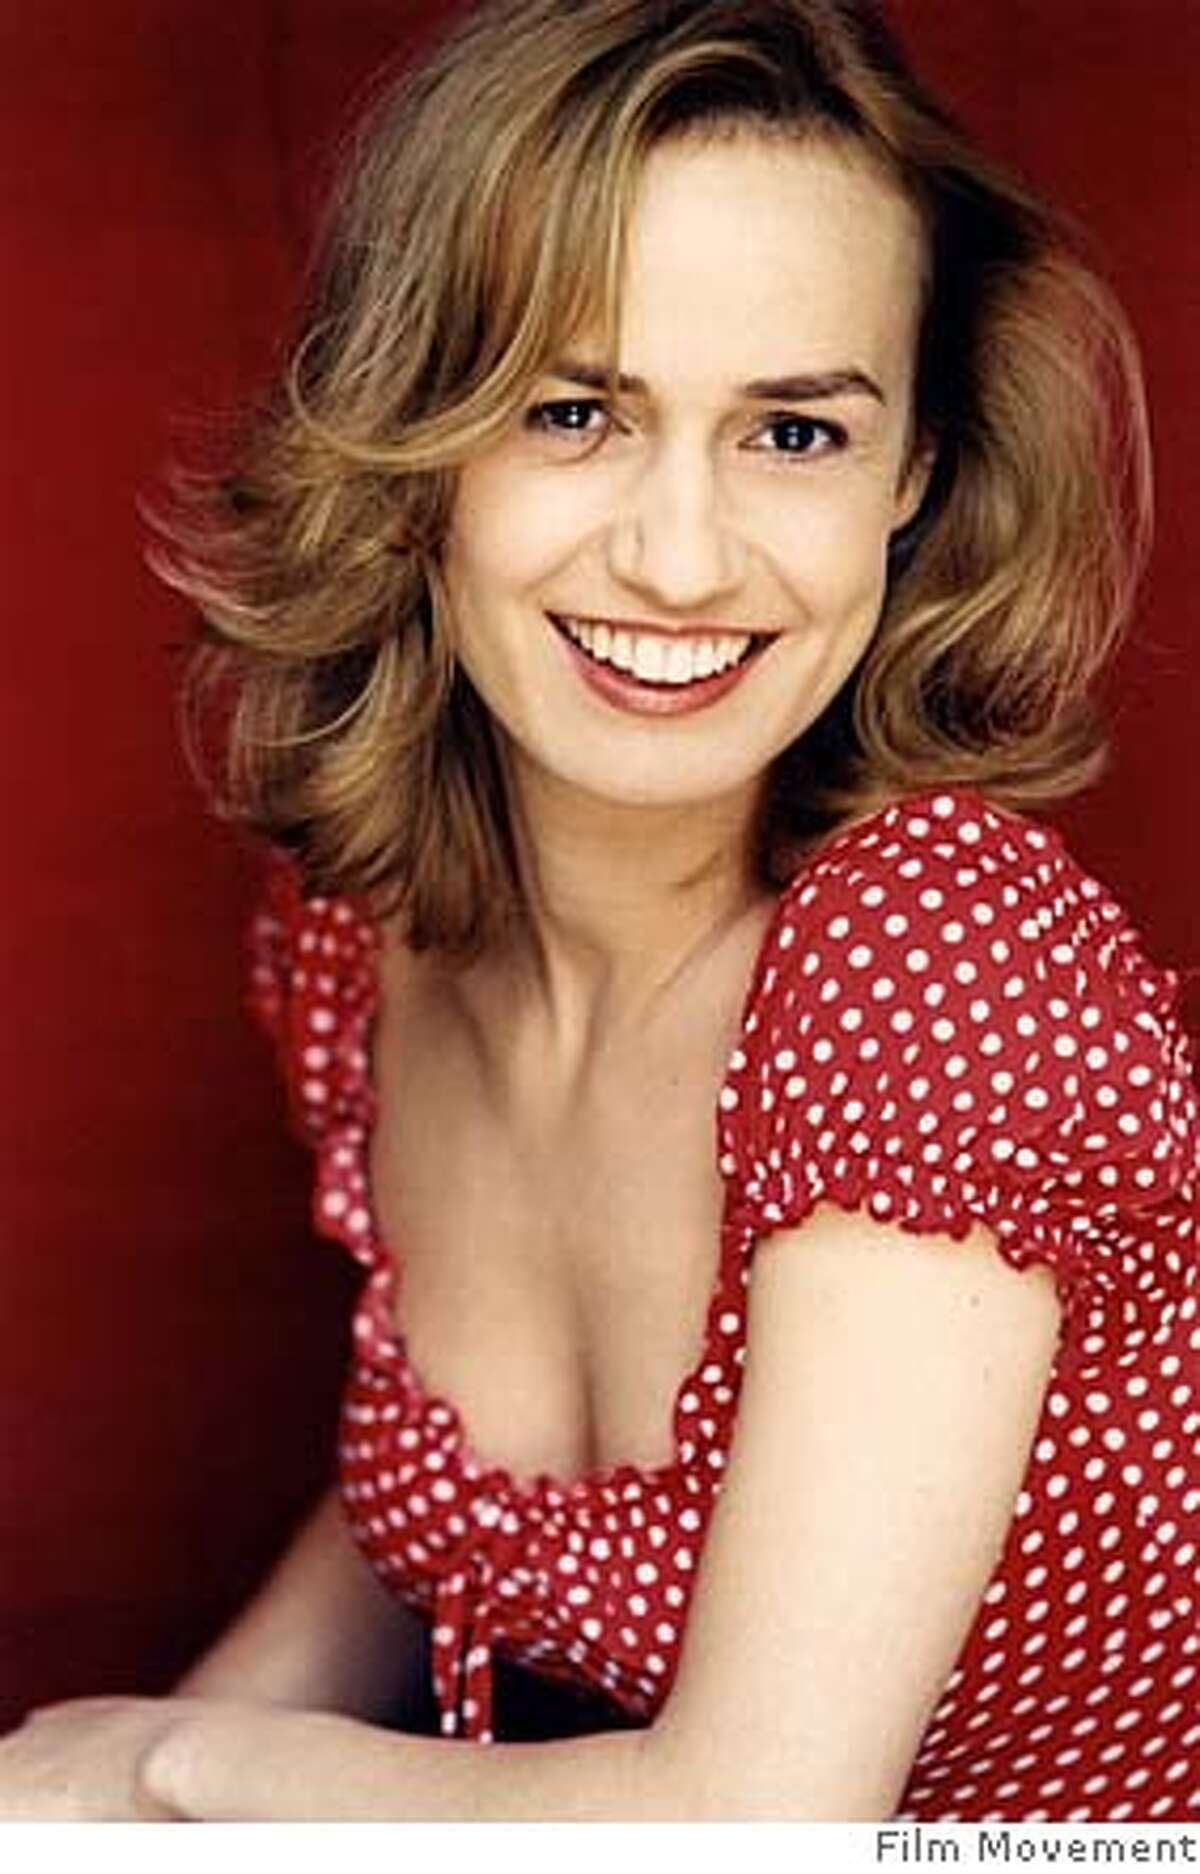 """Sandrine Bonnaire, the famous French actress, has directed """"Her Name Is Sabine,"""" a documentary about her sister Sabine's struggles with autism."""